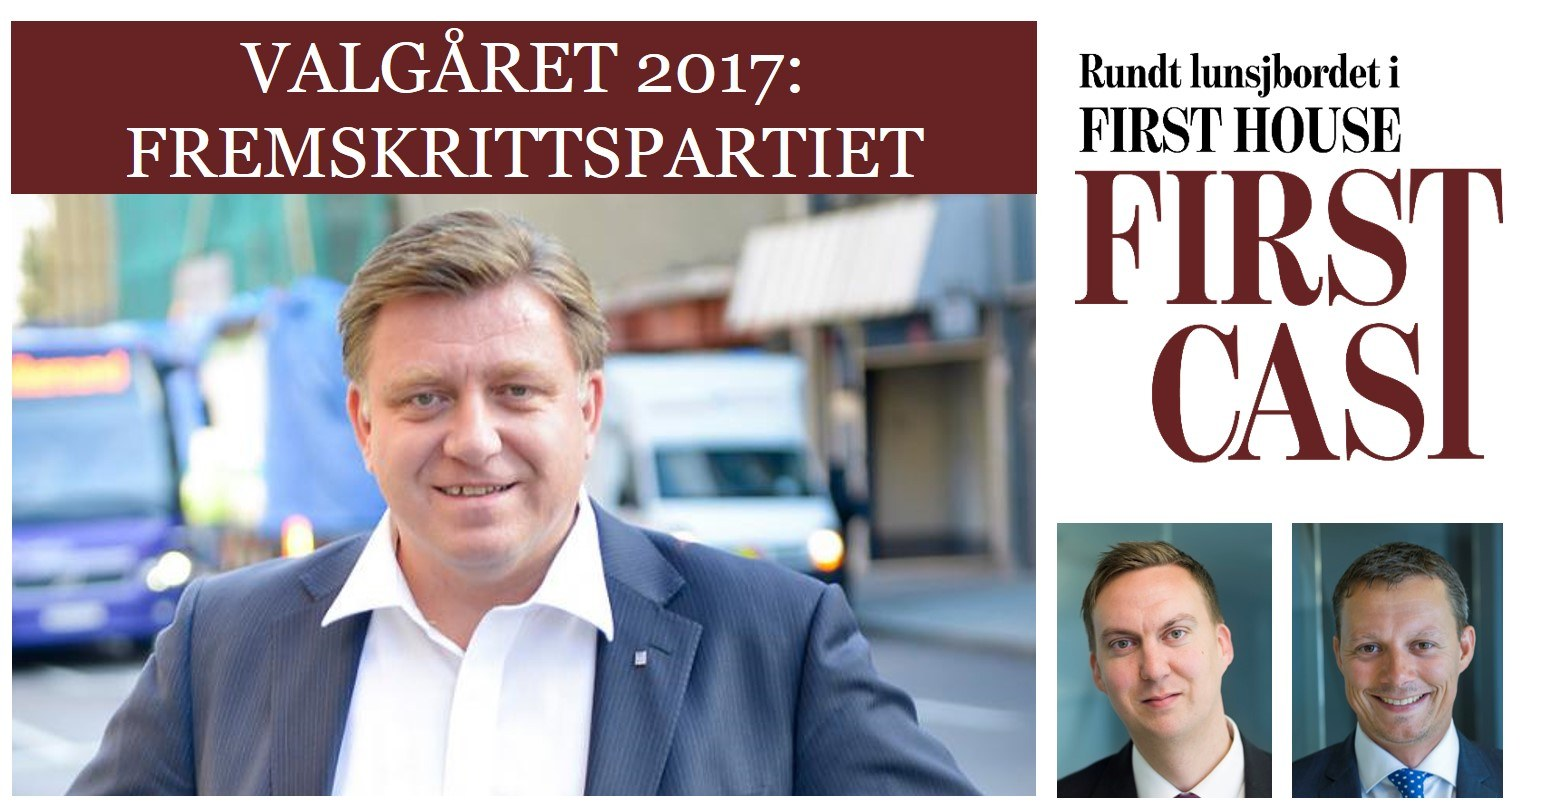 First Cast 9.6.2017 - Valgåret: FrP | Geir Mo